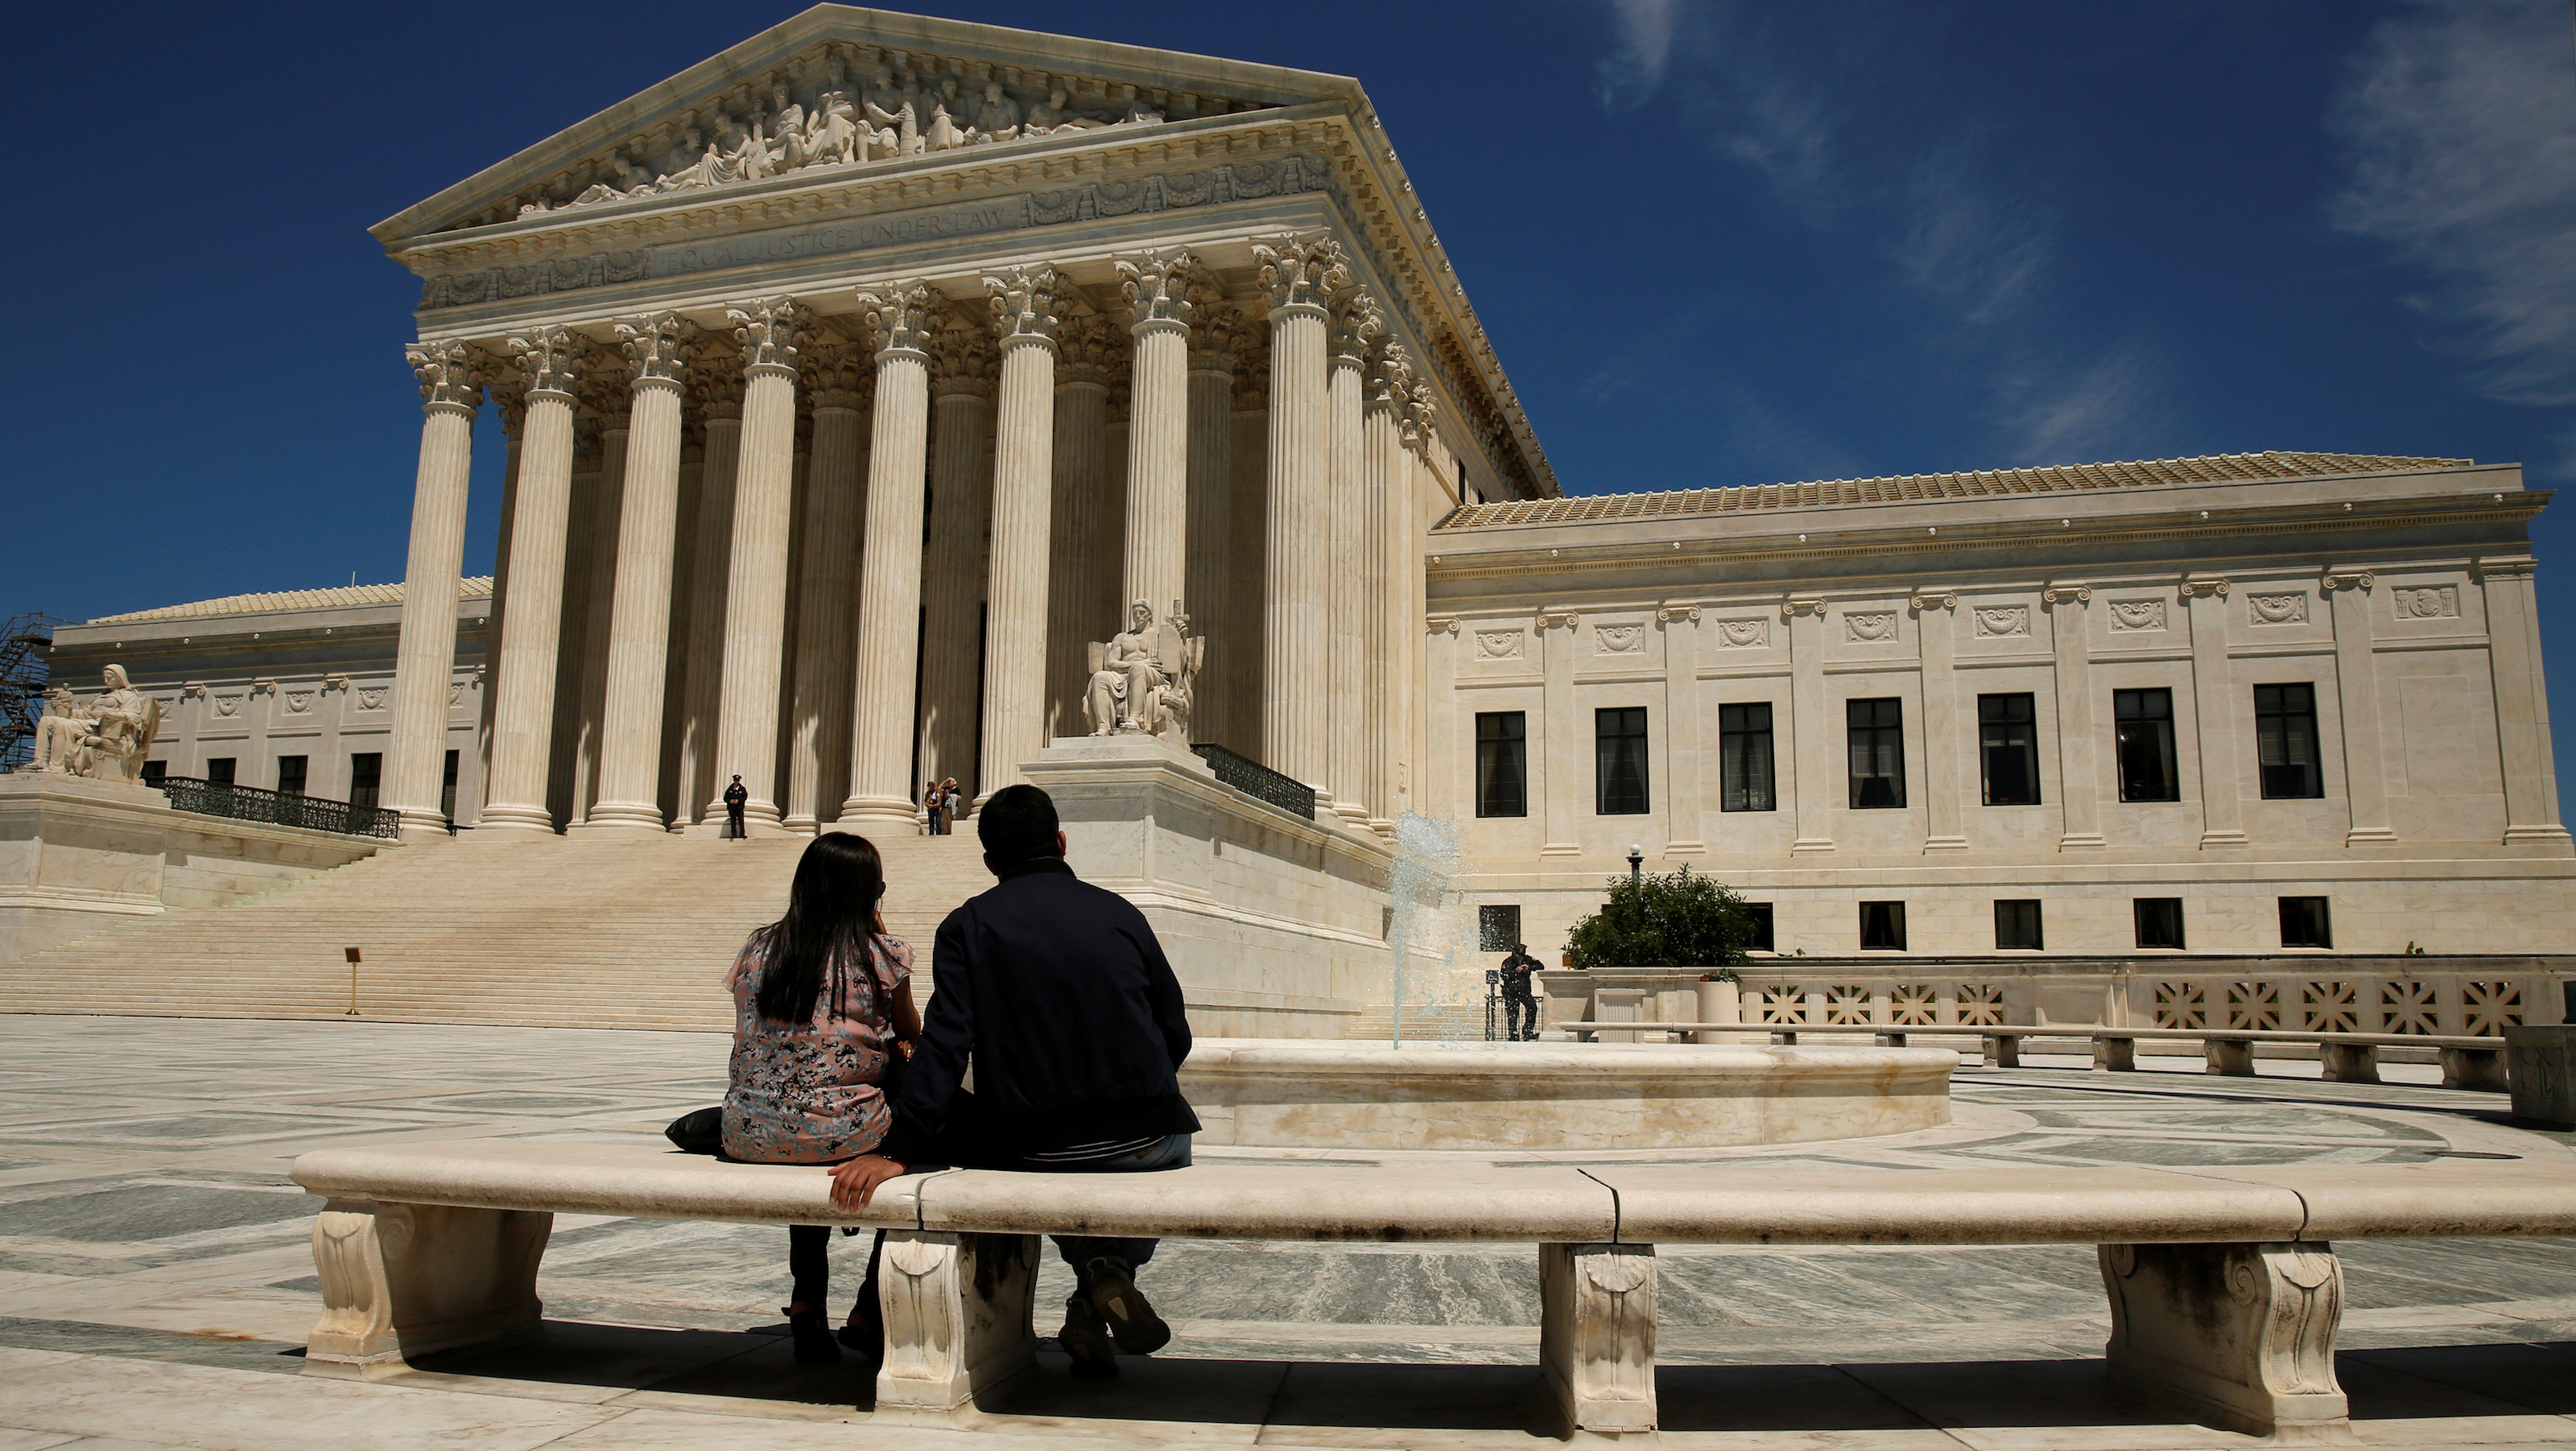 A couple sit in front of the U.S. Supreme Court in Washington May 16, 2016. REUTERS/Kevin Lamarque - RTSEKC1